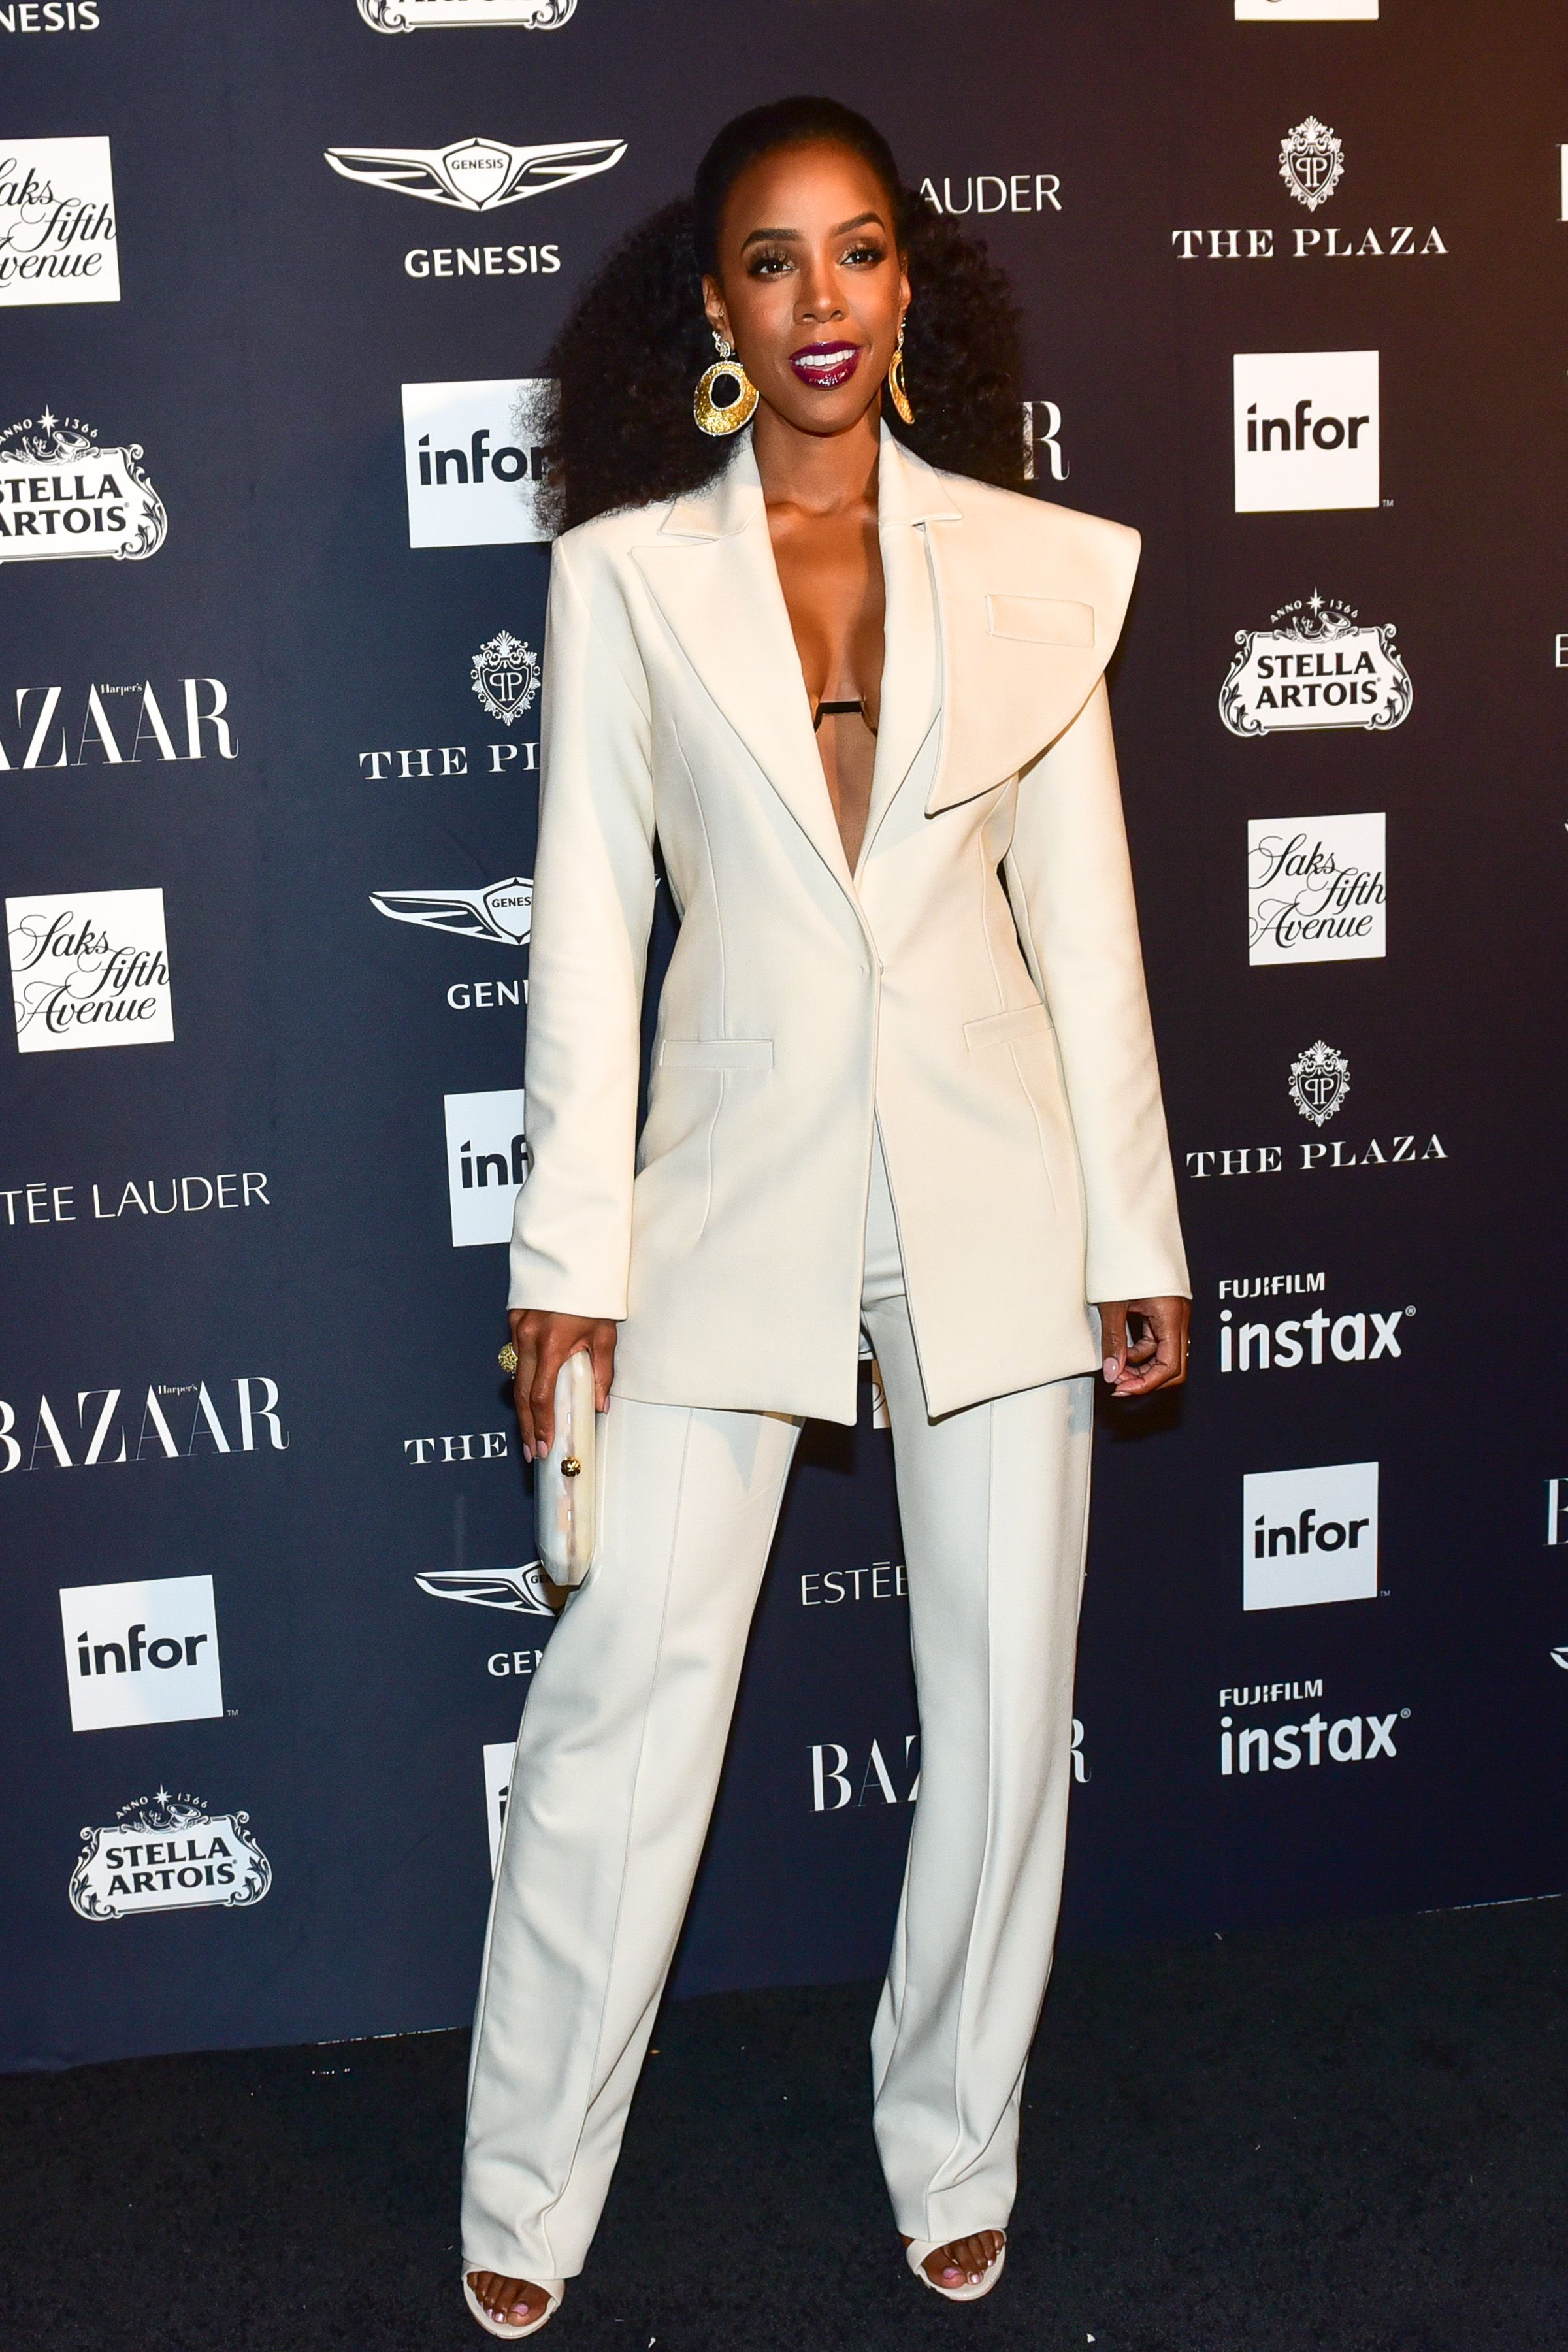 The Worldwide Editors Of Harper's Bazaar Celebrate ICONS by Carine Roitfeld presented by Infor, Stella Artois, FUJIFILM, Estee Lauder, Saks Fifth Avenue and Genesis